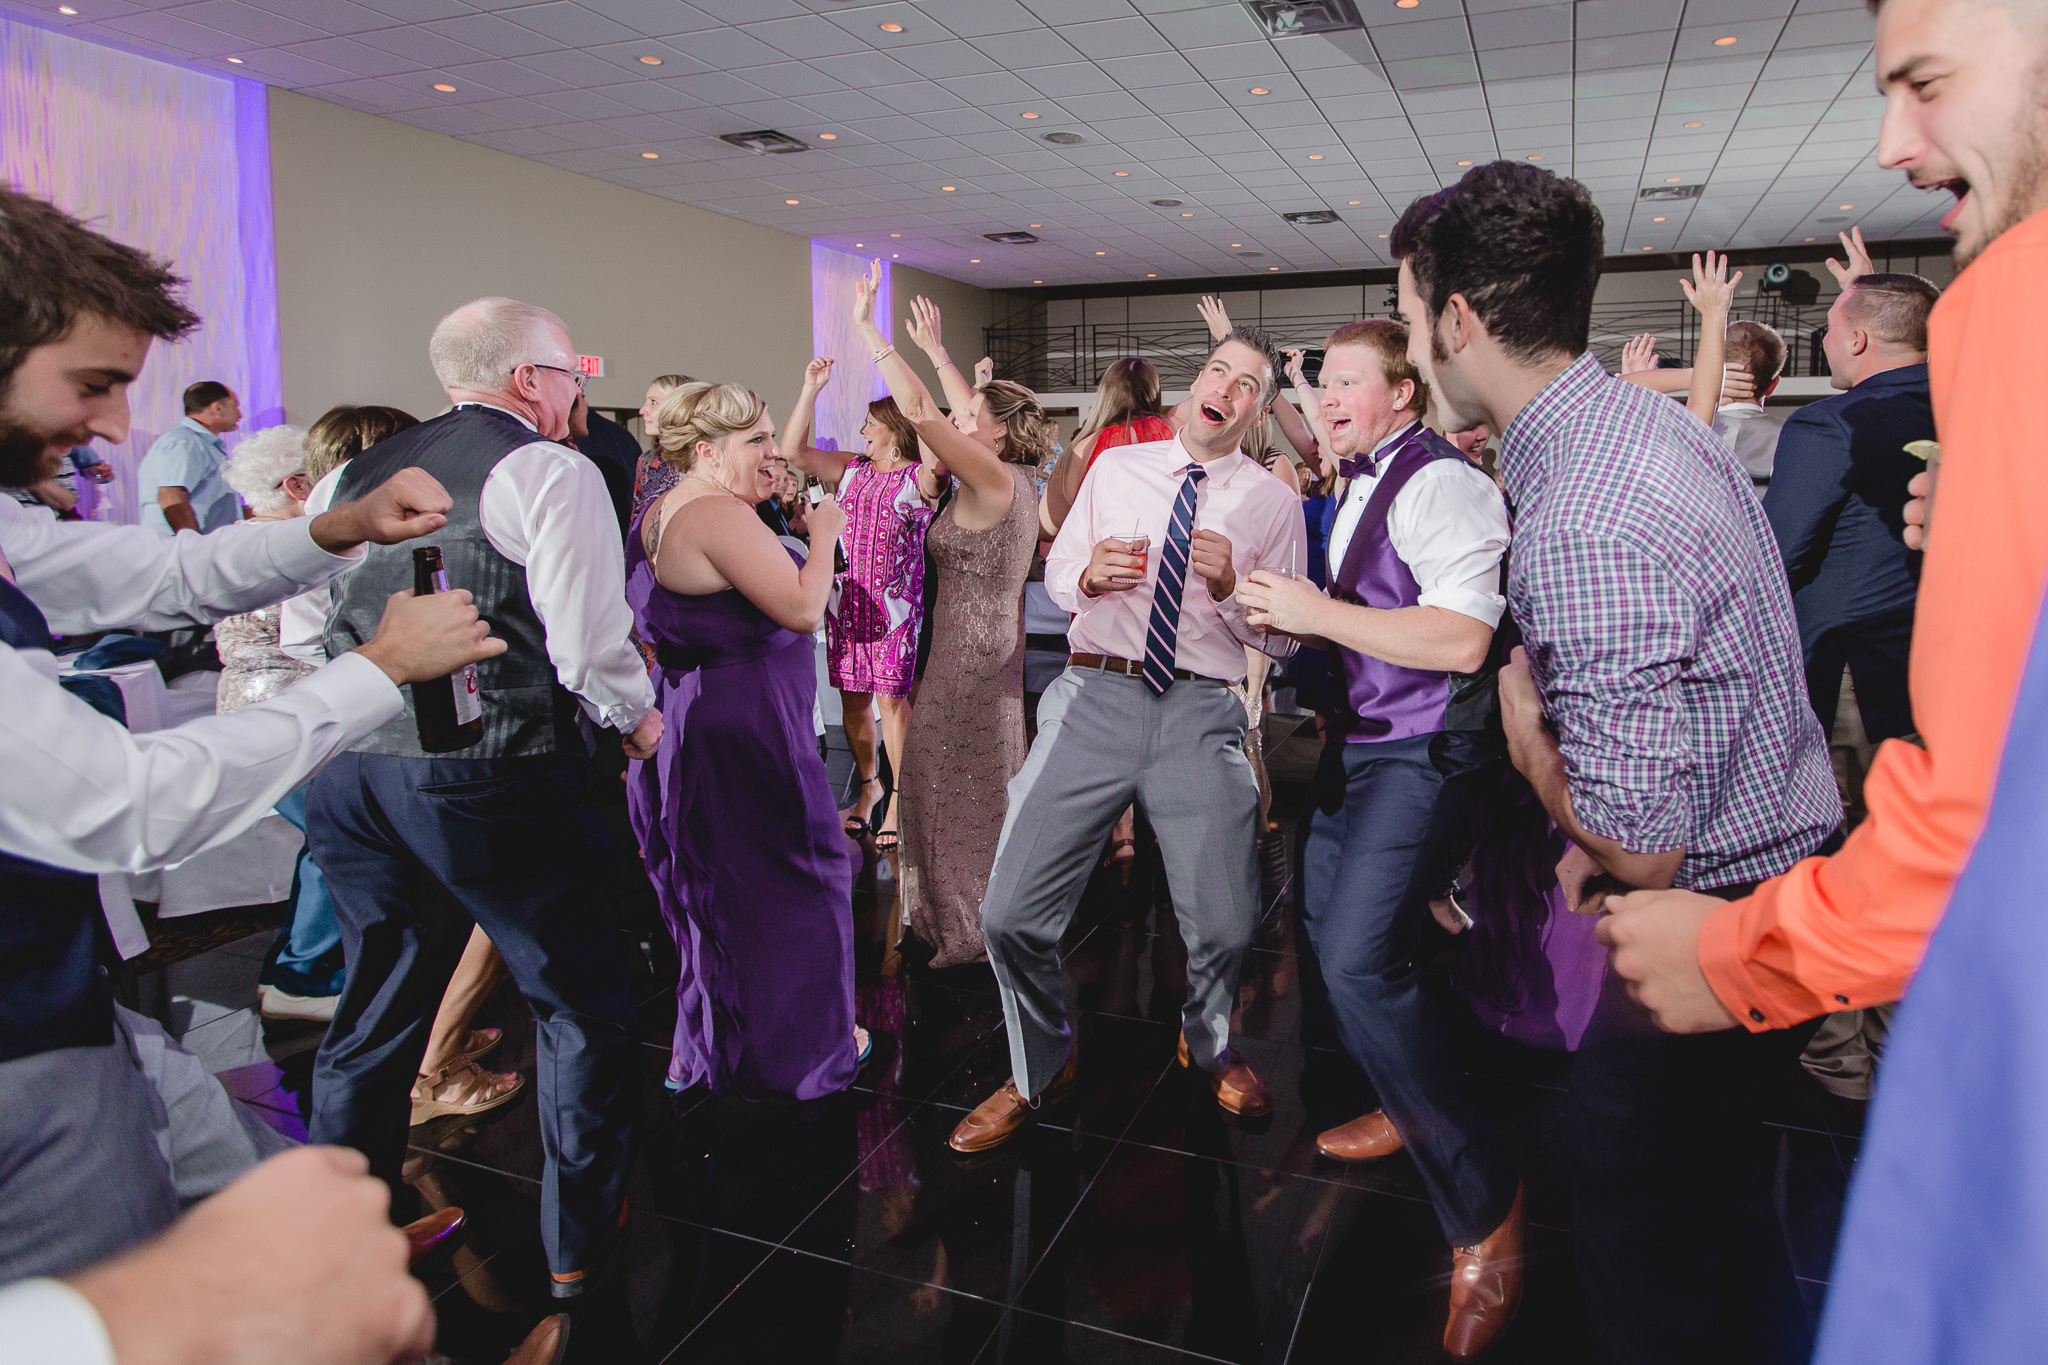 Guests dance to music at a Fez wedding reception